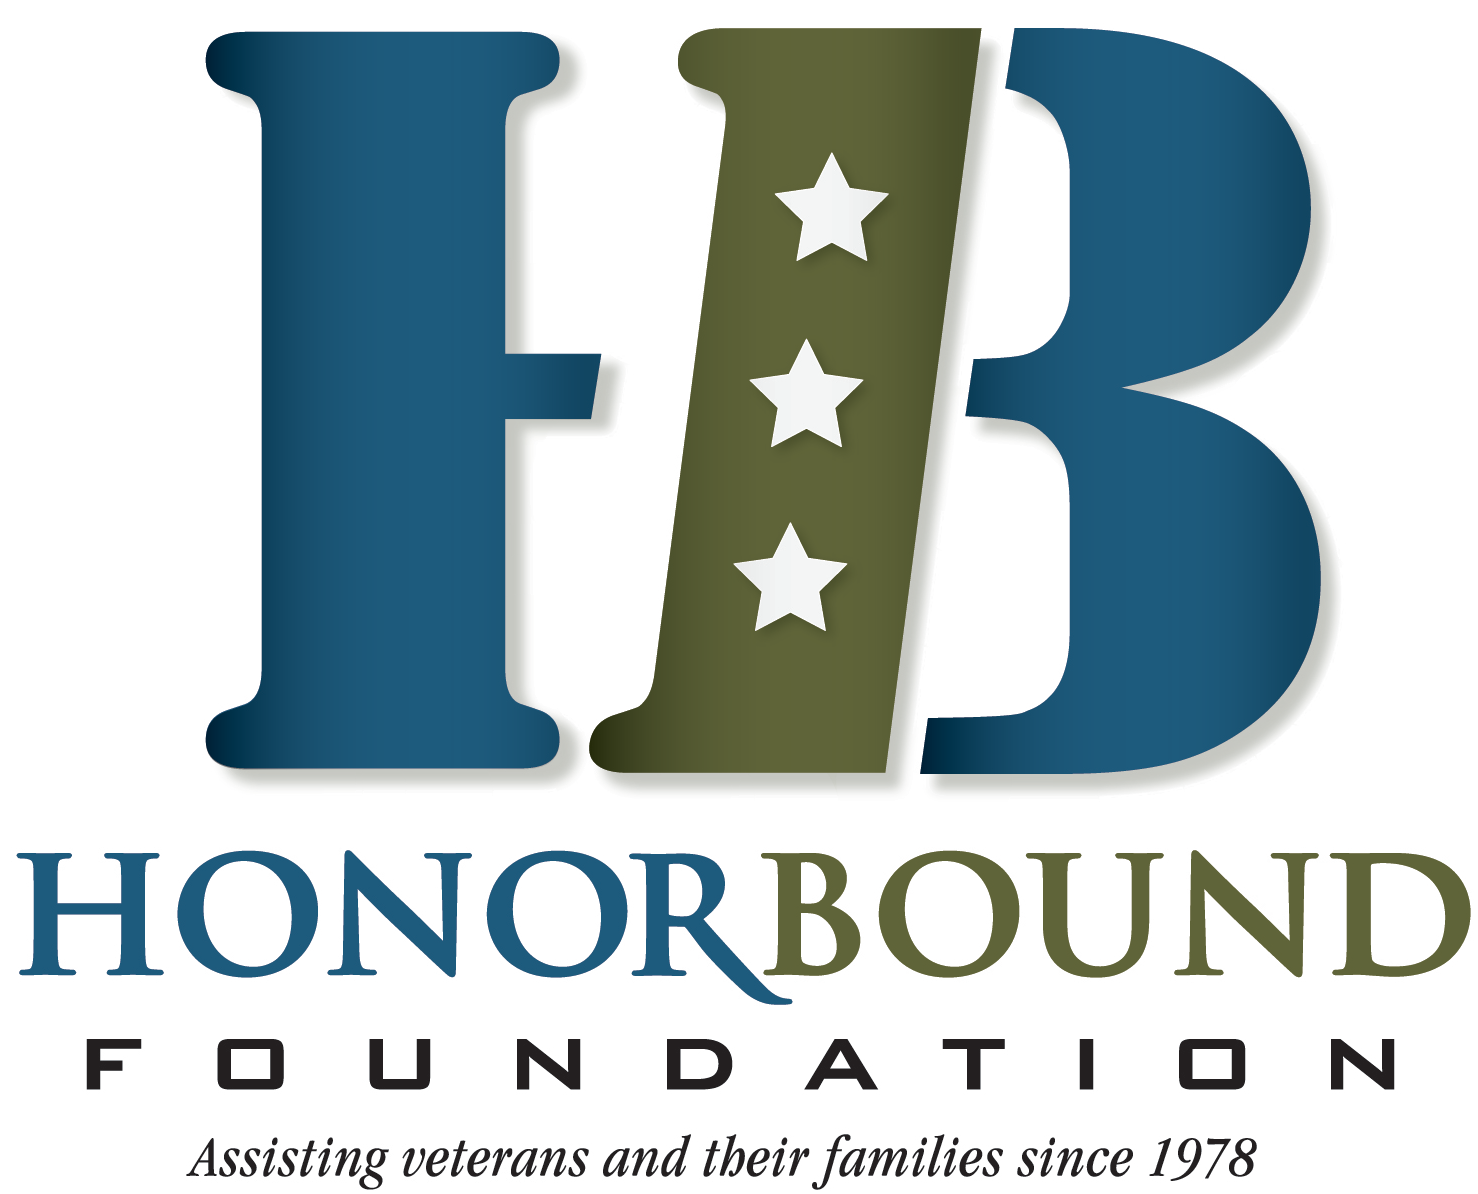 Texas Car Donations - HonorBound Foundation - DonatecarUSA.com